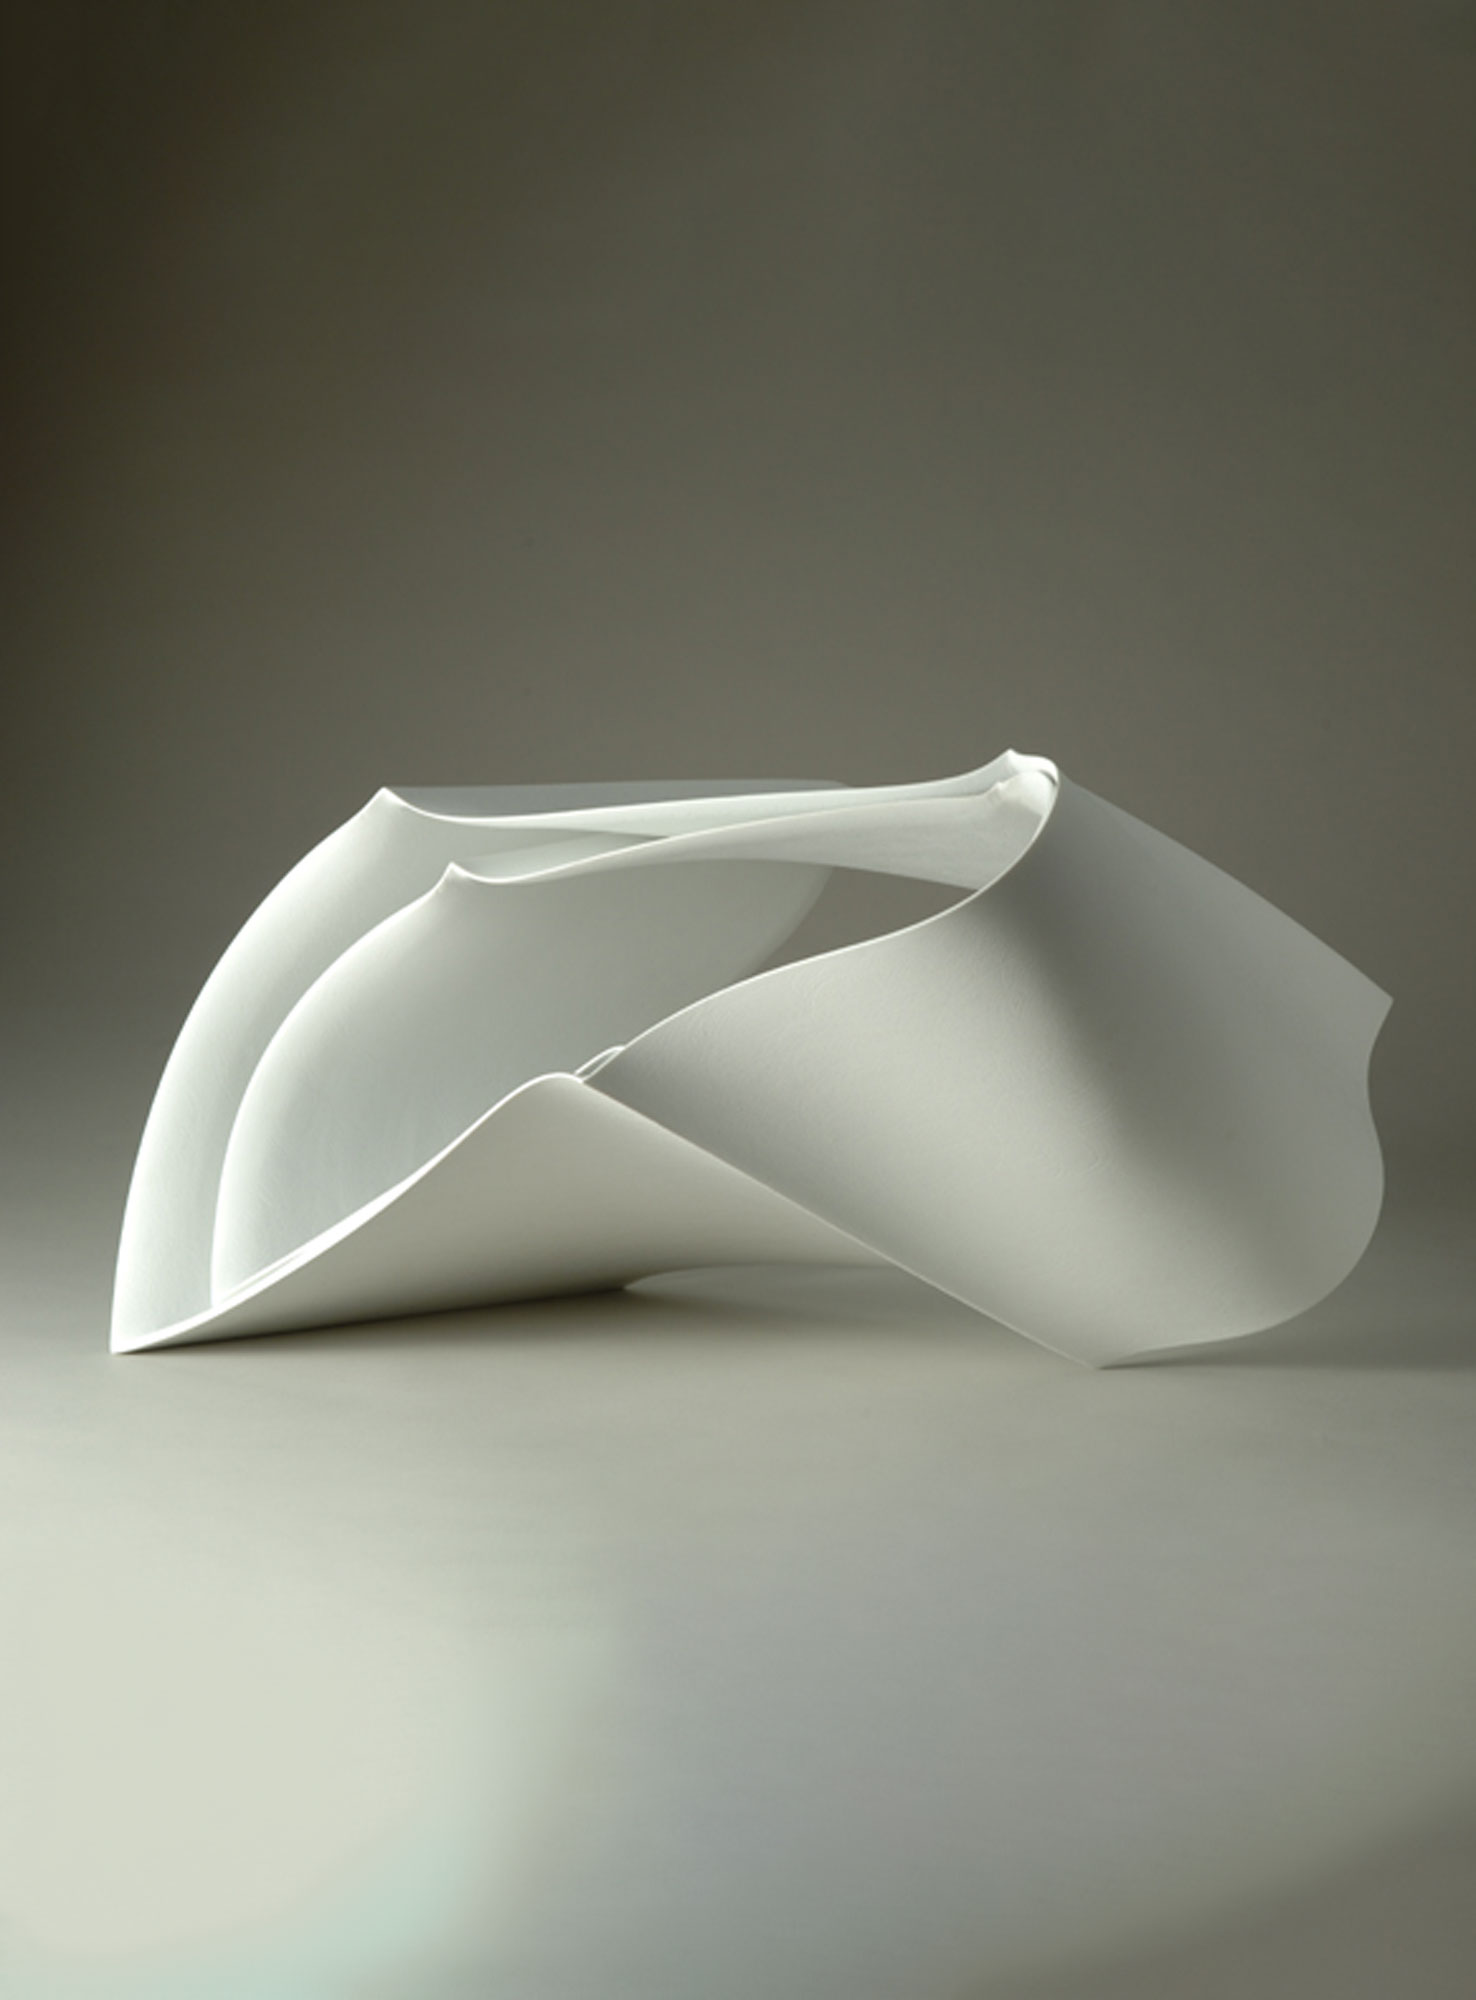 Forms in Succession (2009)